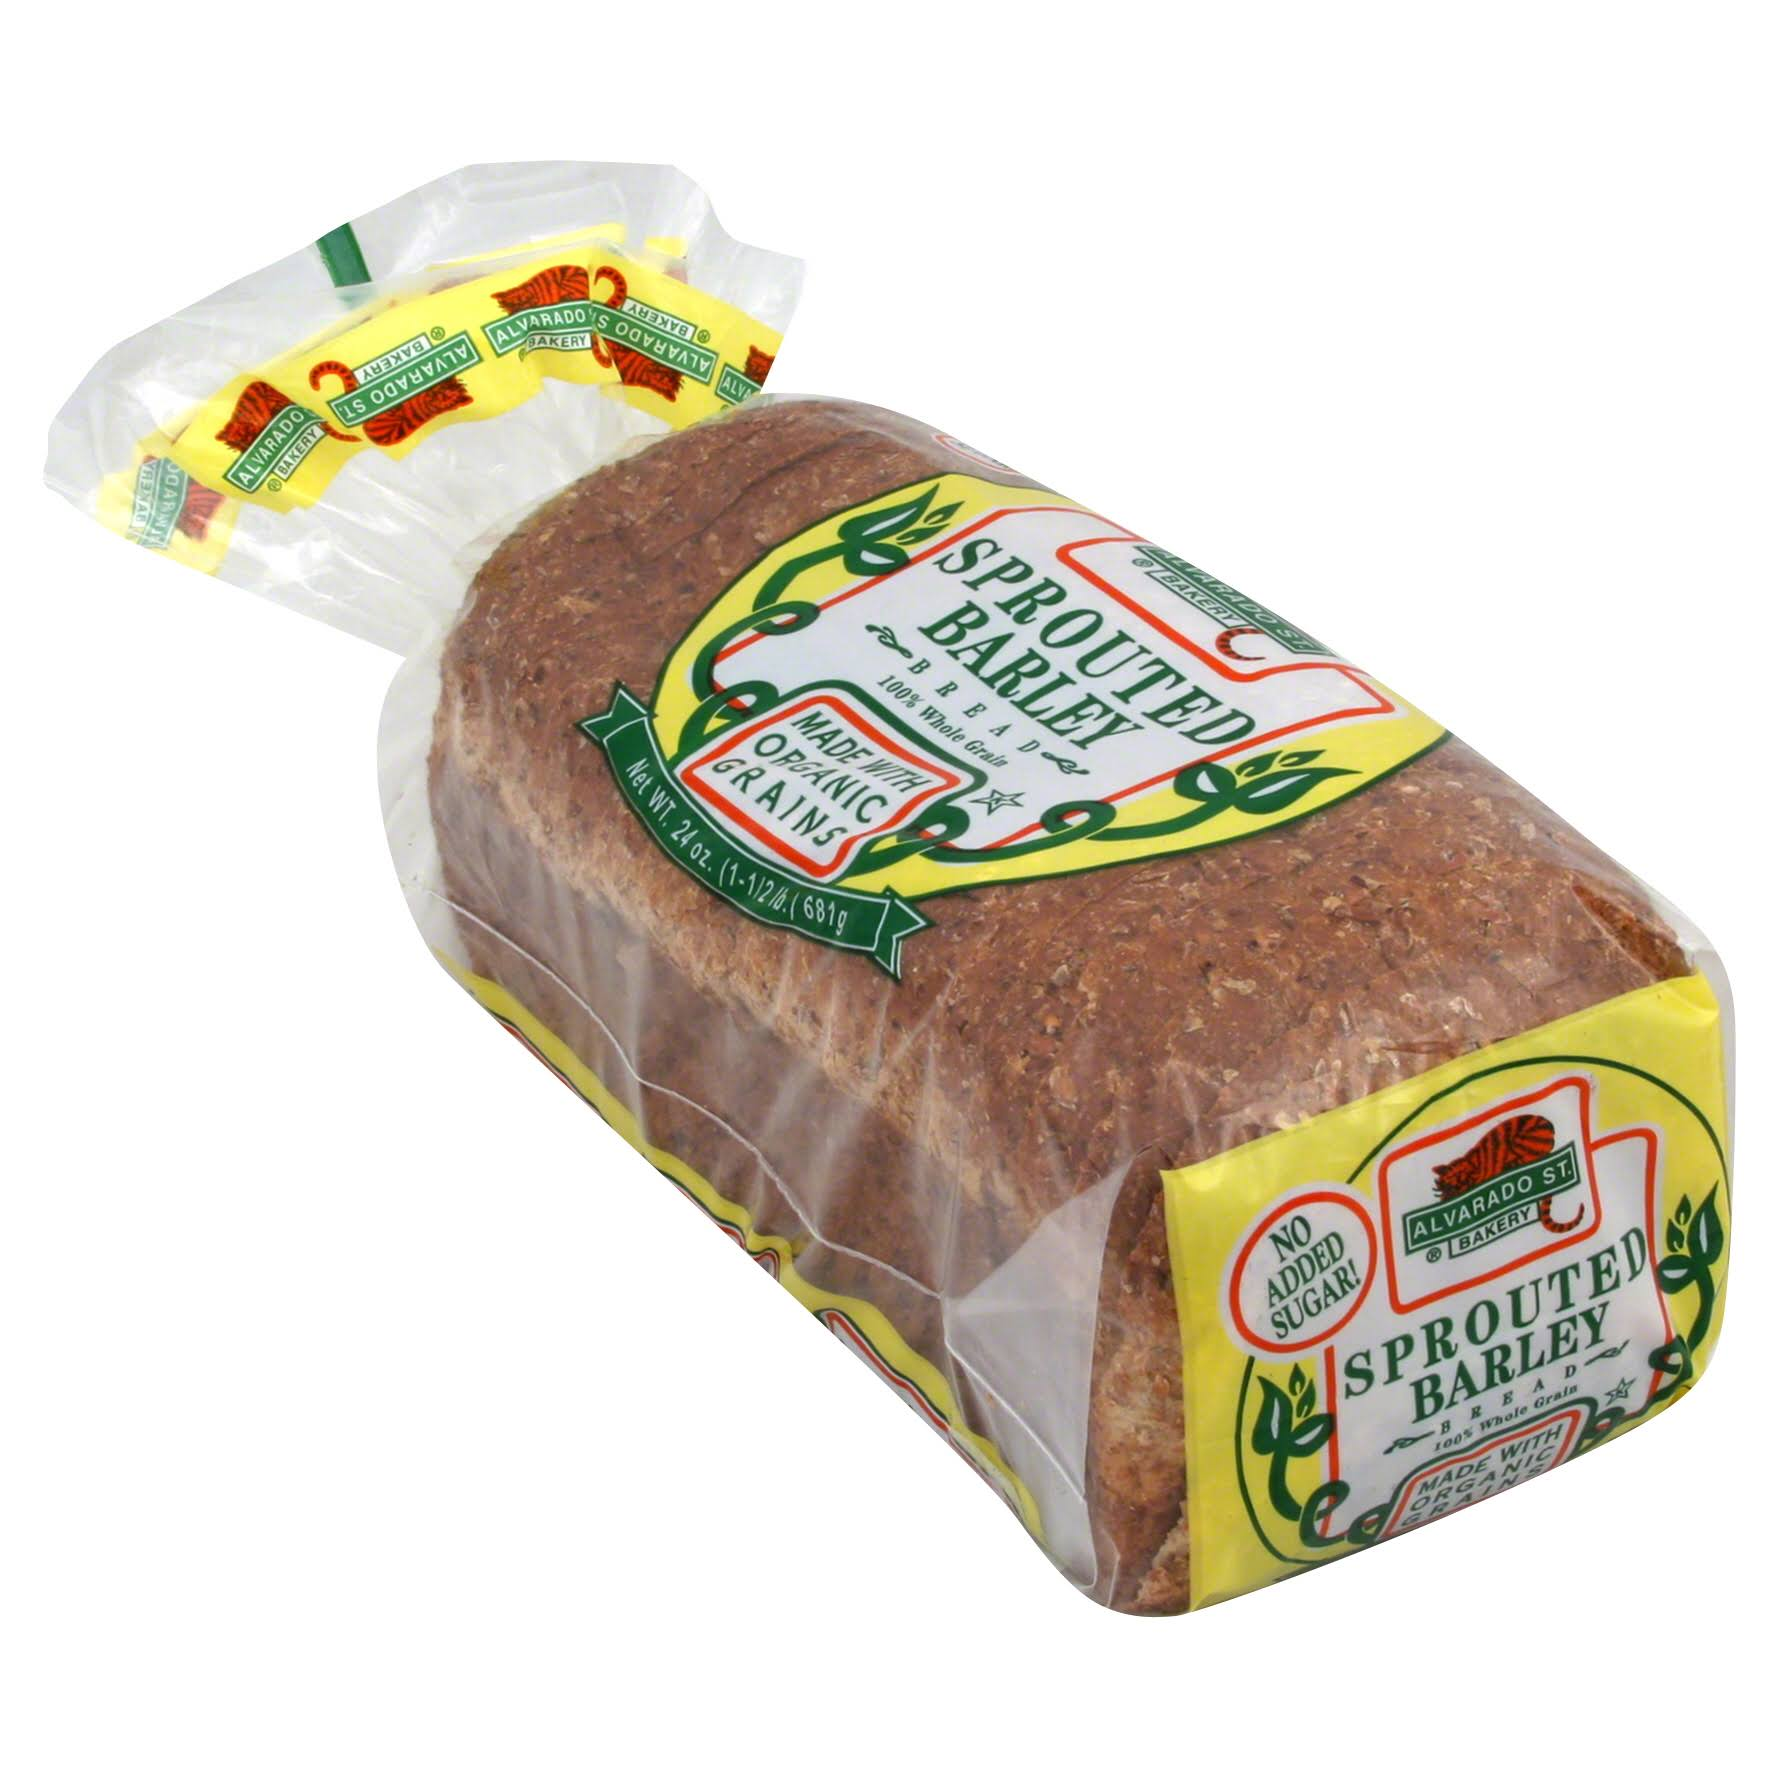 Alvarado St. Bakery Sprouted Barley Bread - 24oz